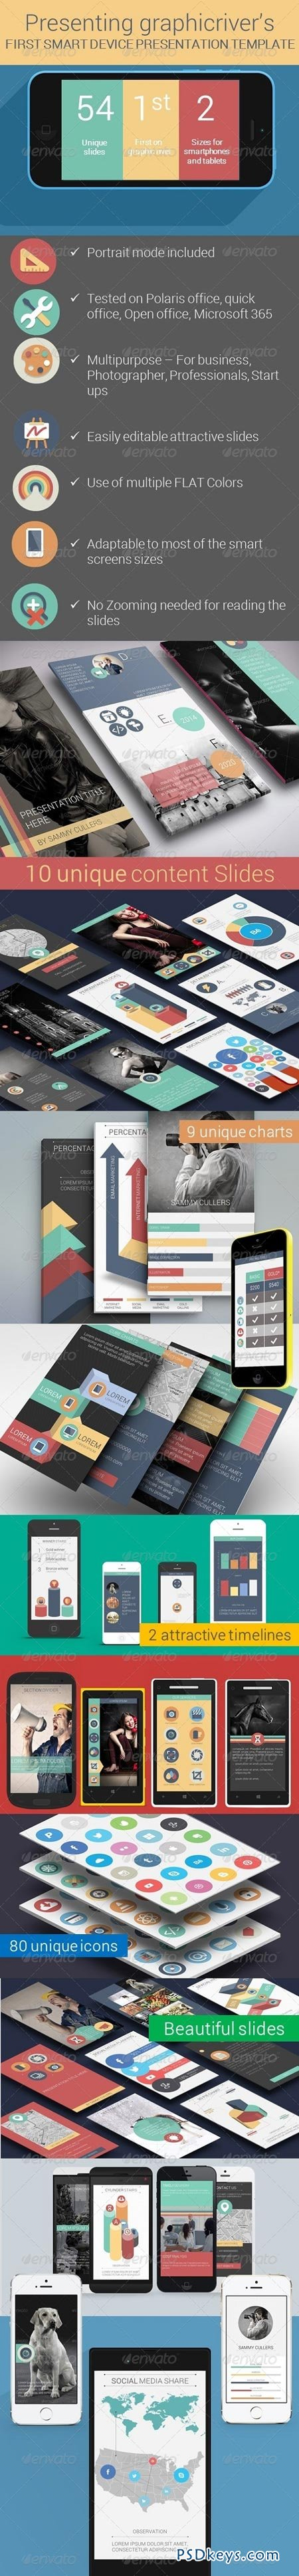 Flat Smart Device Presentation Template 8255219